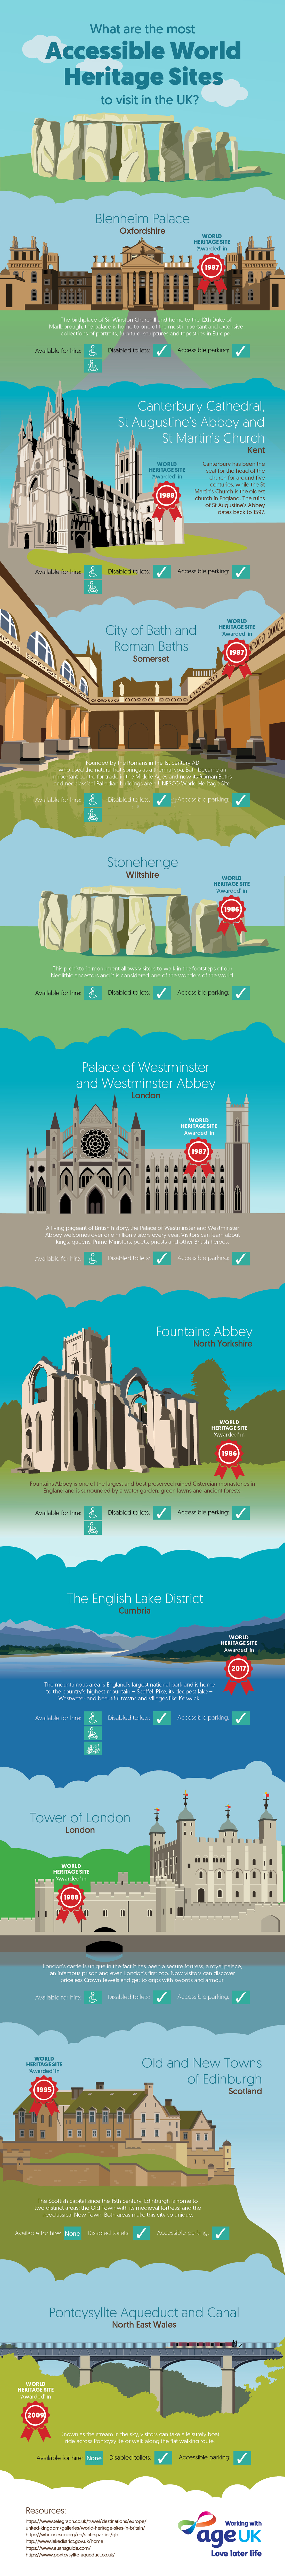 Most accessible World Heritage Sites to visit in the UK